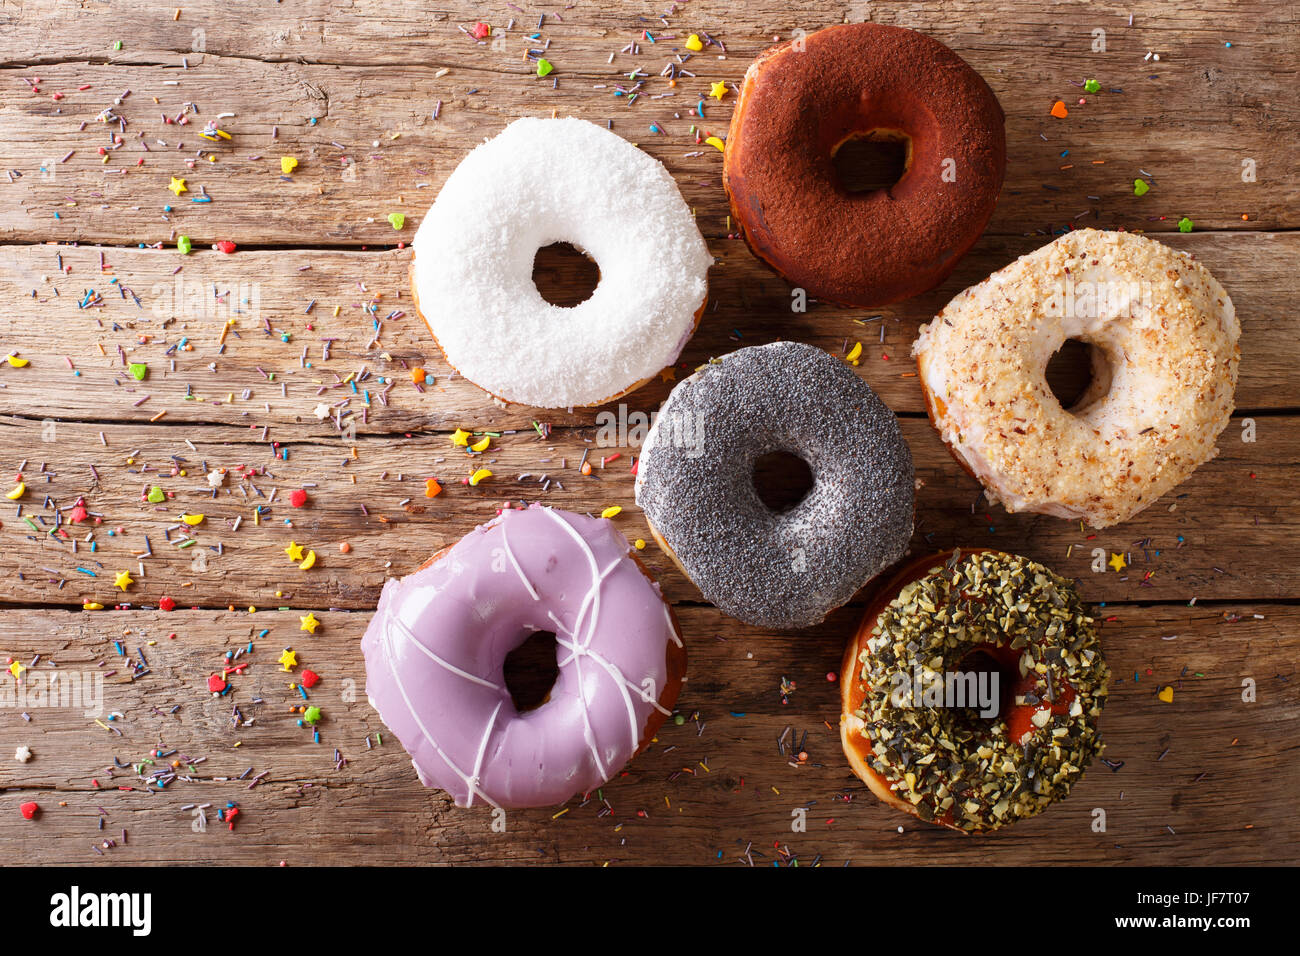 Multicolored donuts with fillings close-up on the table. horizontal view from above - Stock Image